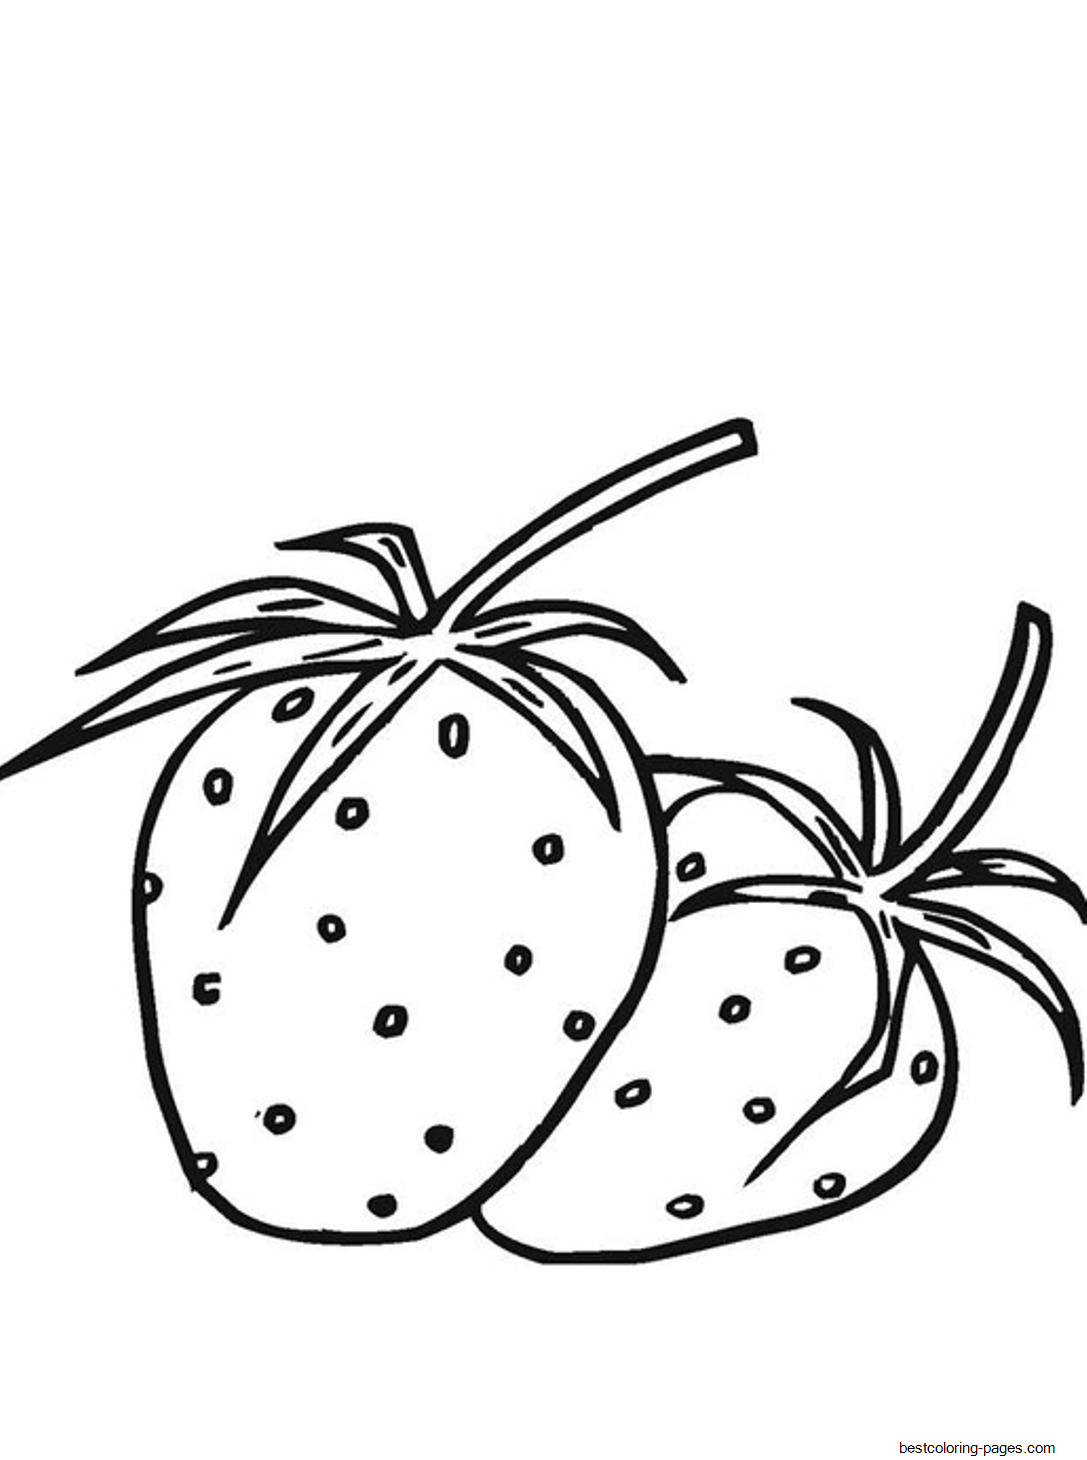 strawberry for coloring strawberry coloring pages download and print strawberry for coloring strawberry